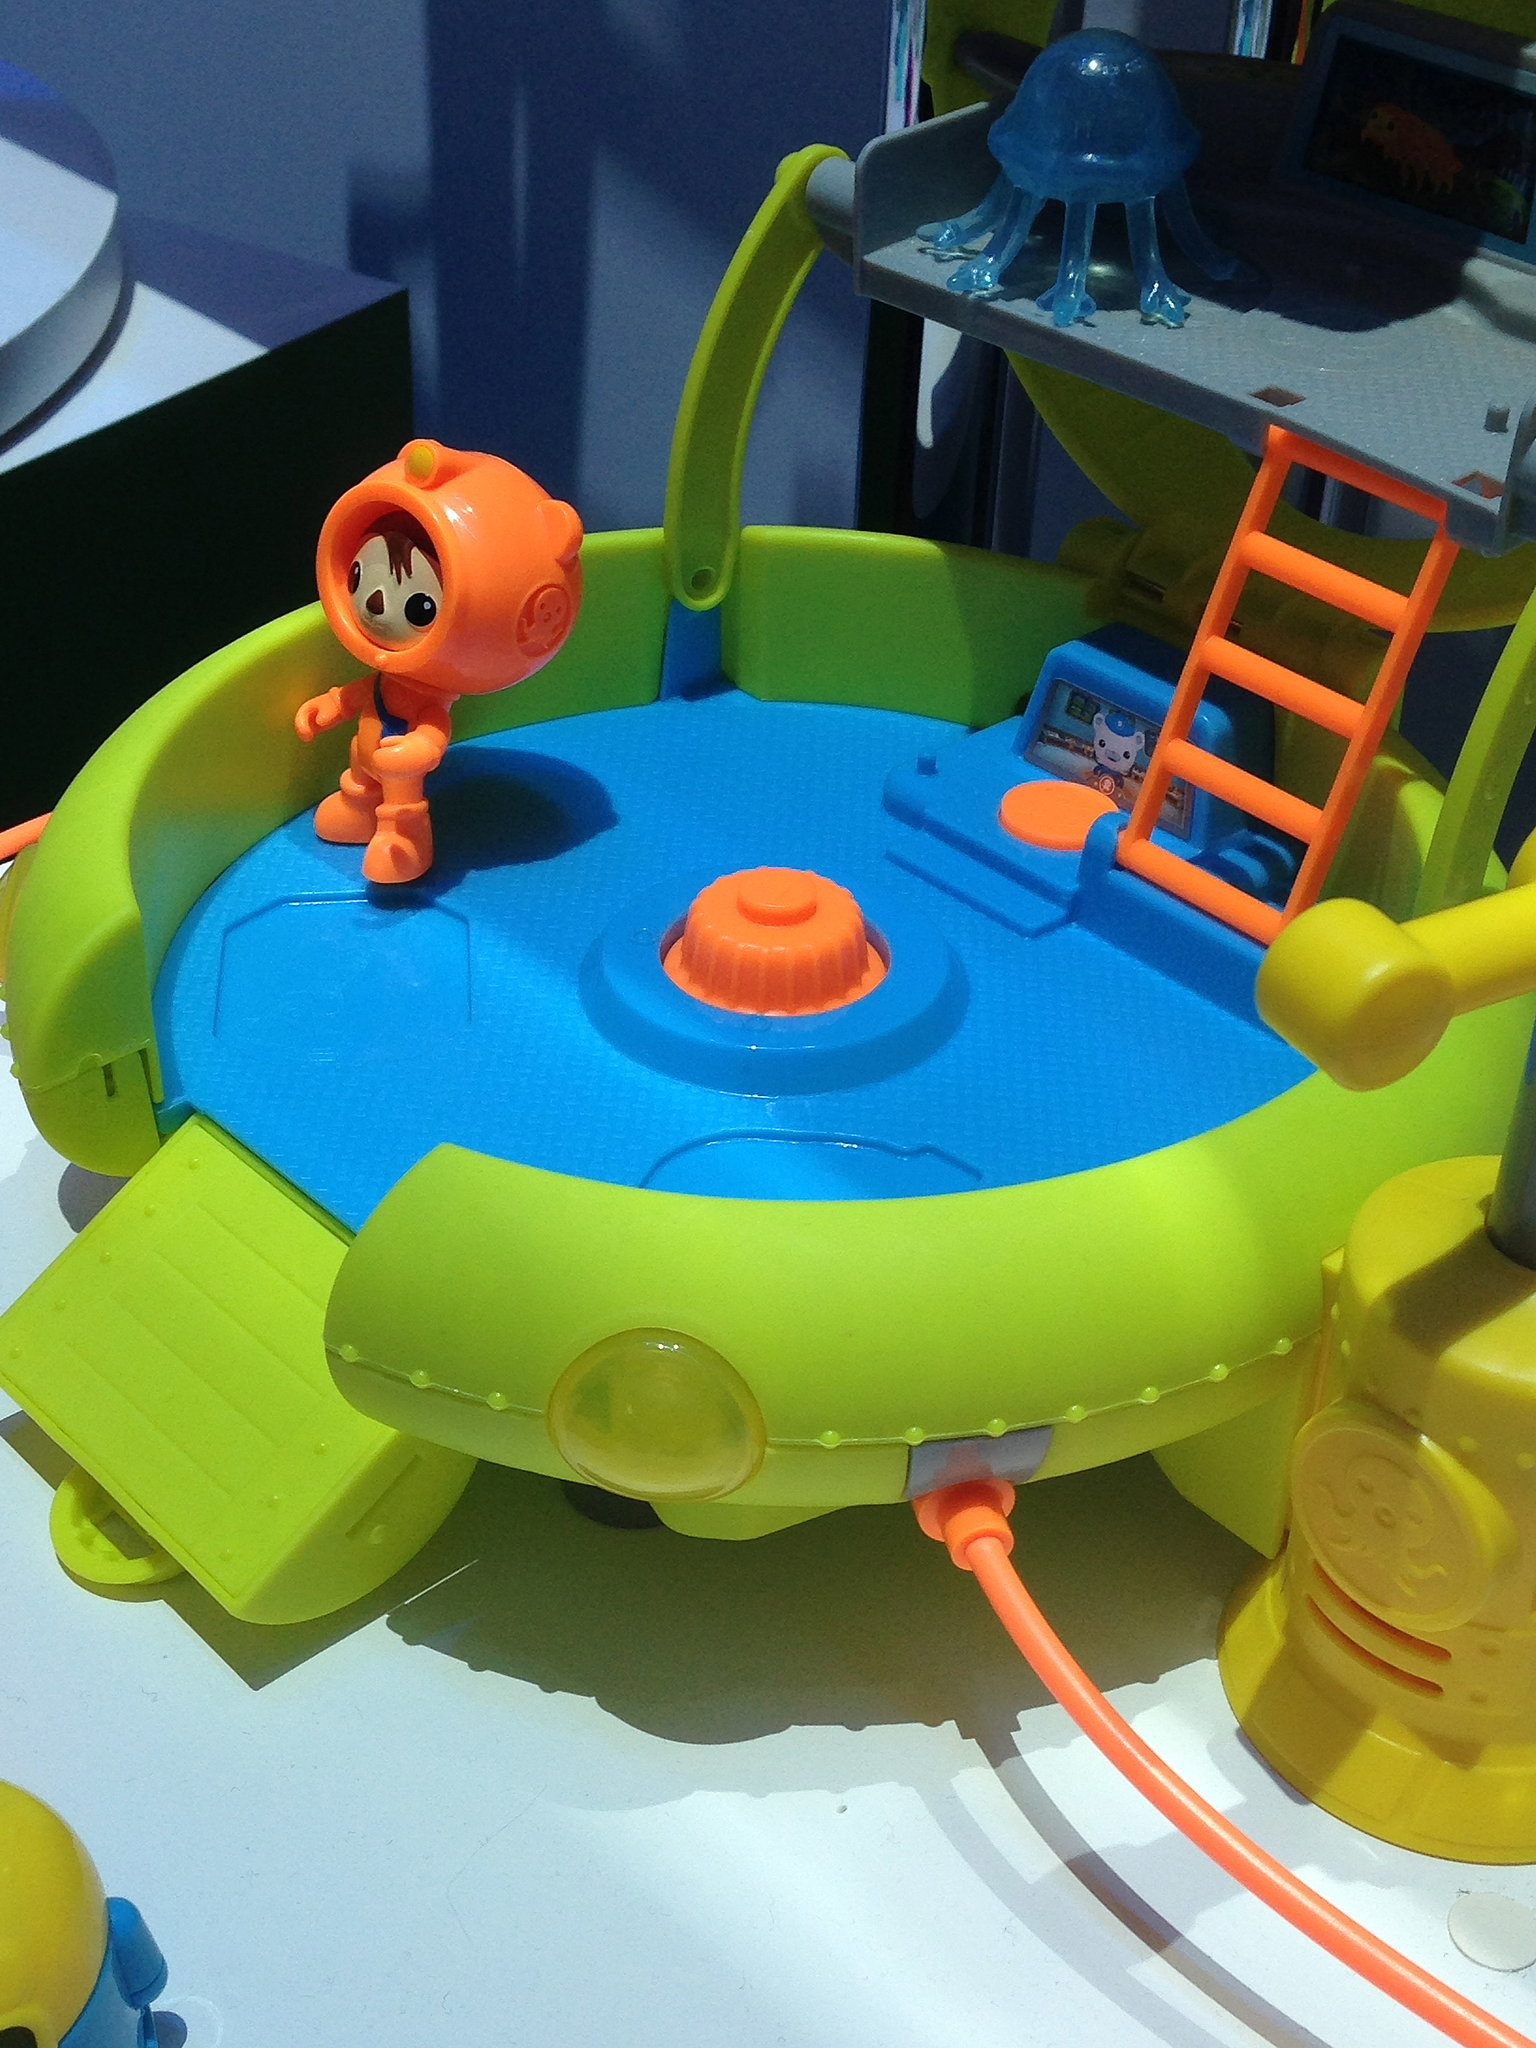 Octonauts Play Set